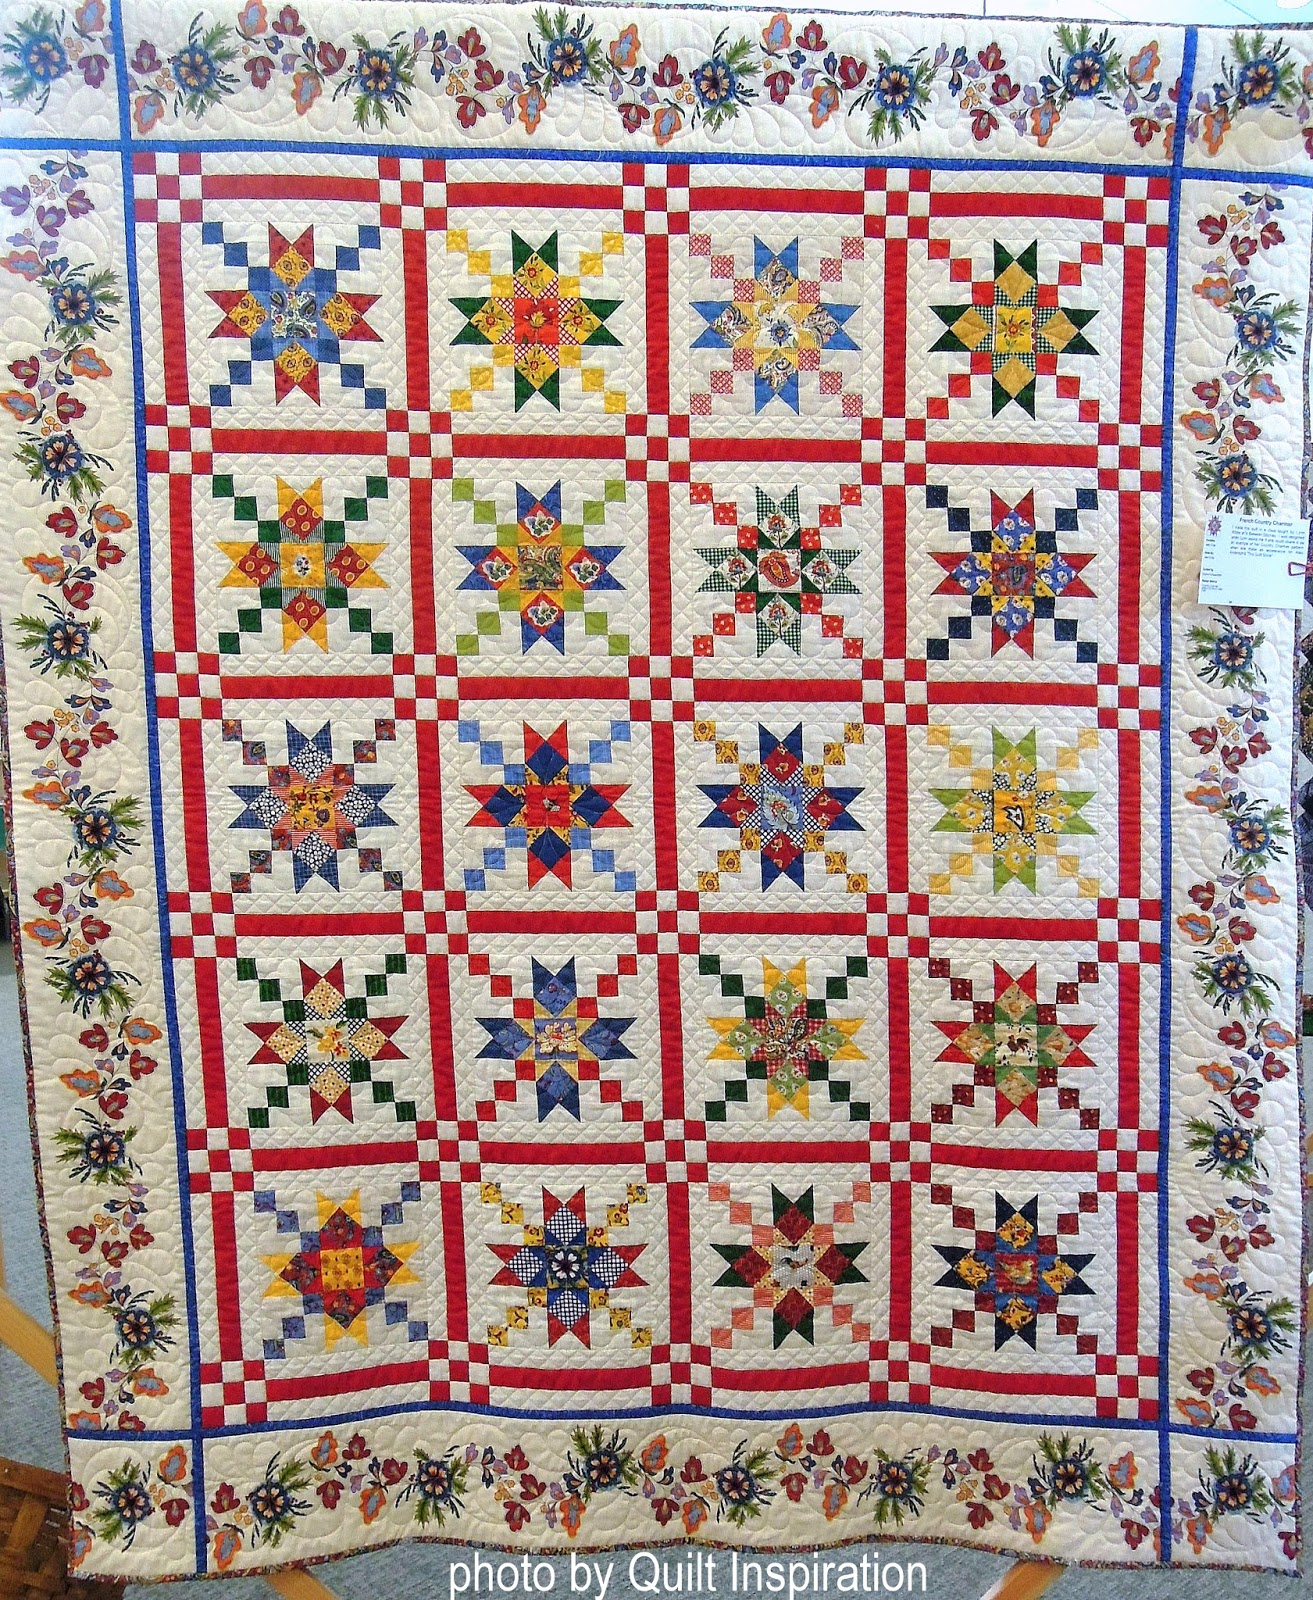 Amador Valley Quilt Show California Day 1 Quilt Inspiration